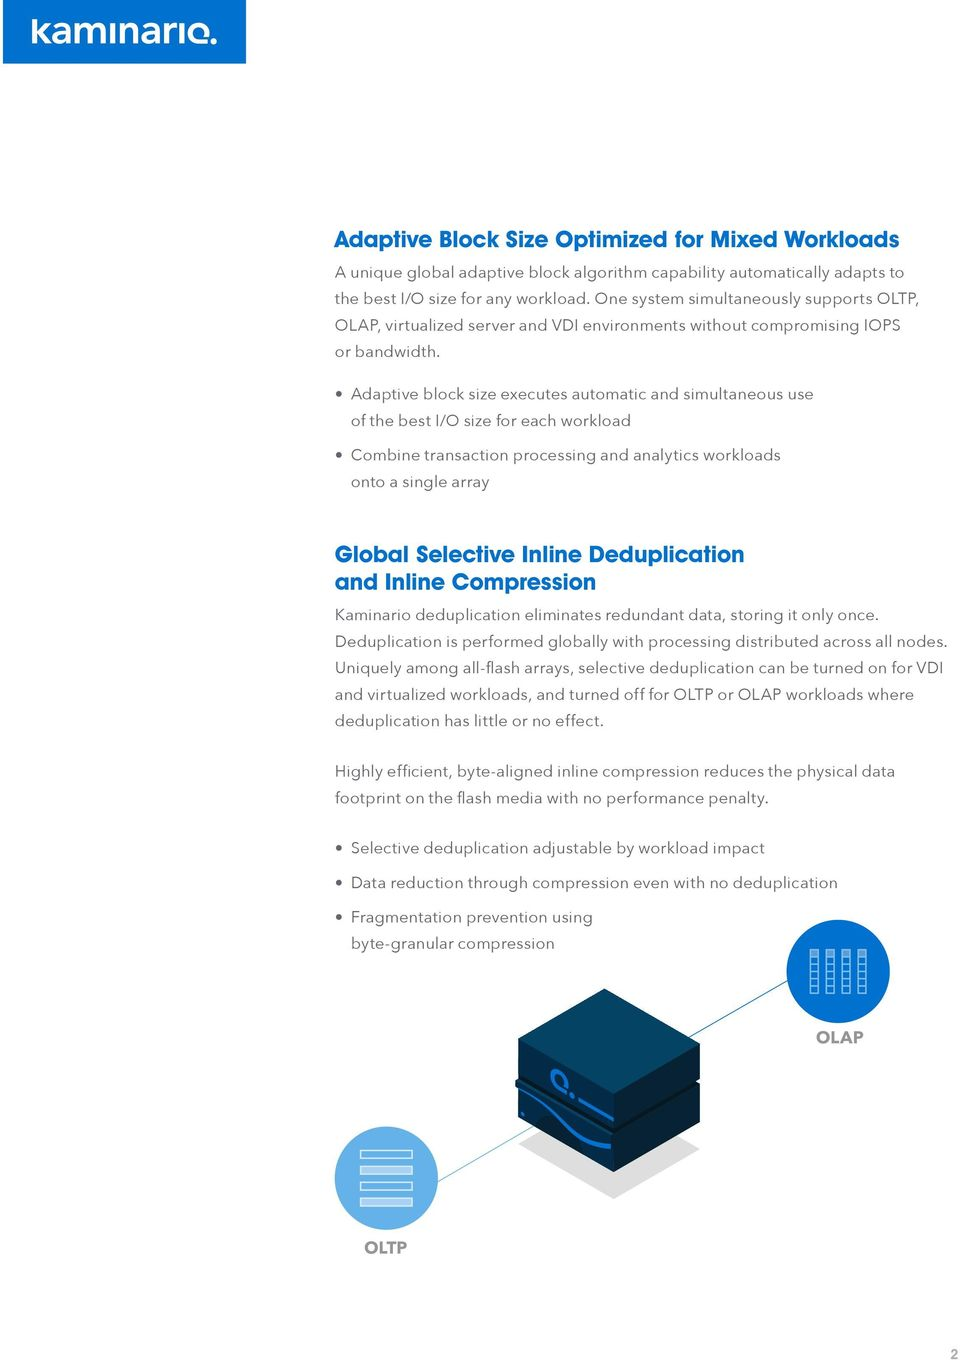 Adaptive block size executes automatic and simultaneous use of the best I/O size for each workload Combine transaction processing and analytics workloads onto a single array Global Selective Inline